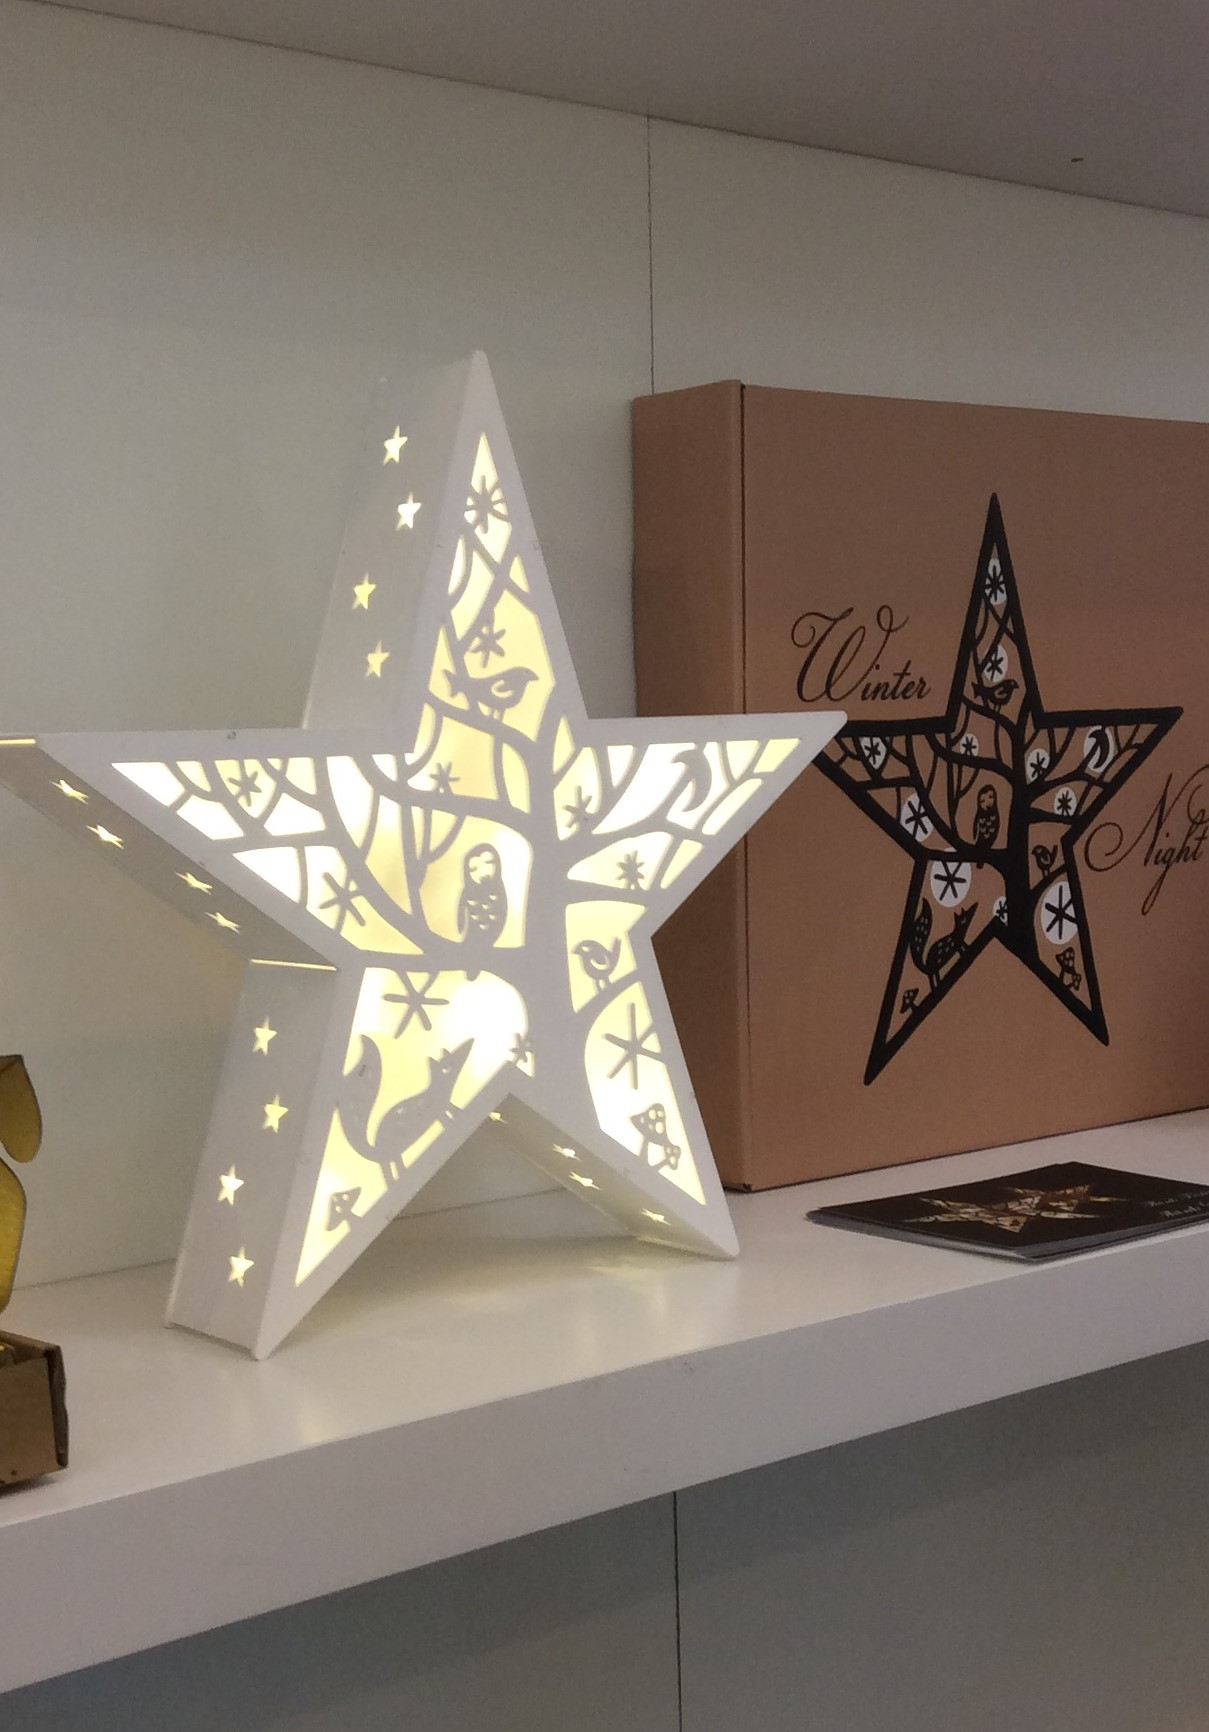 Led winter star light auradecor designsauradecor designs for Household decorative items